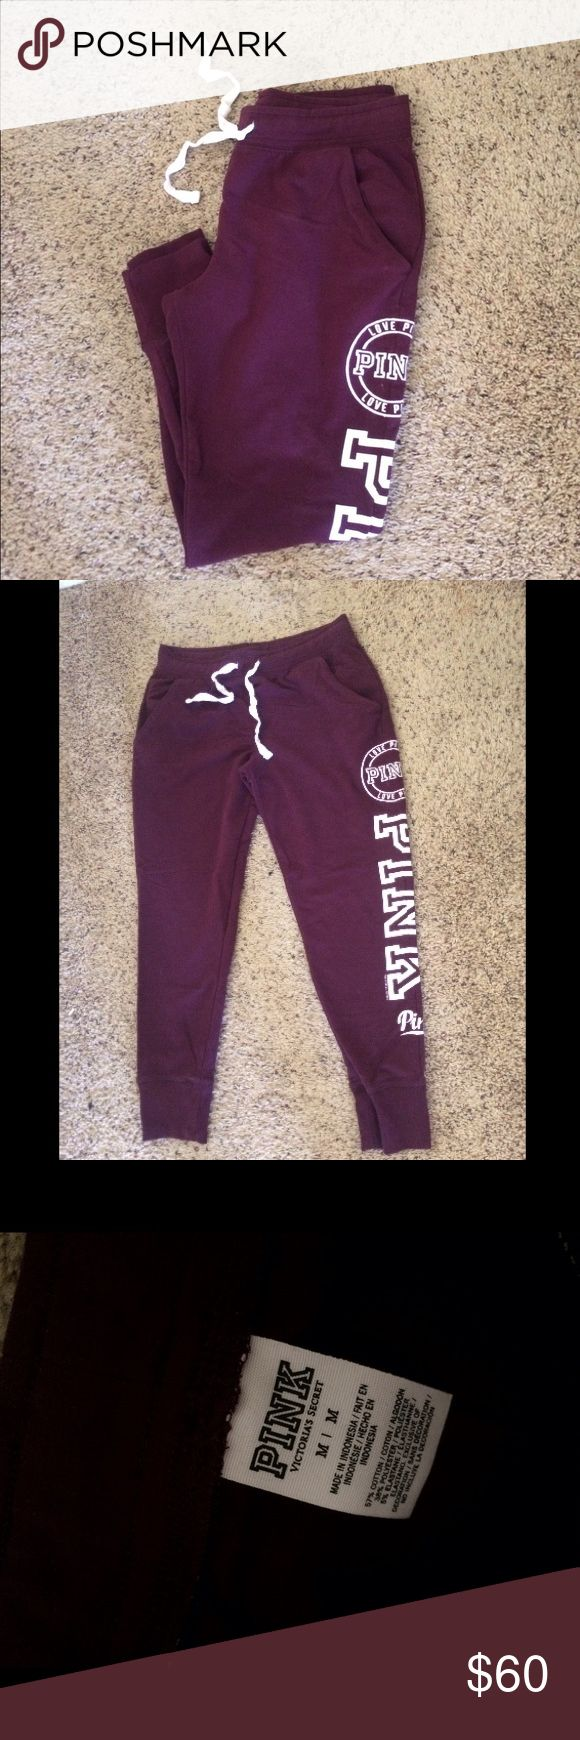 VS Pink Burgundy / Maroon Joggers Victoria's Secret PINK maroon jogger sweat pants with white detail. Two pockets and drawstring waistband. NWOT NO TRADES Victoria's Secret Pants Track Pants & Joggers